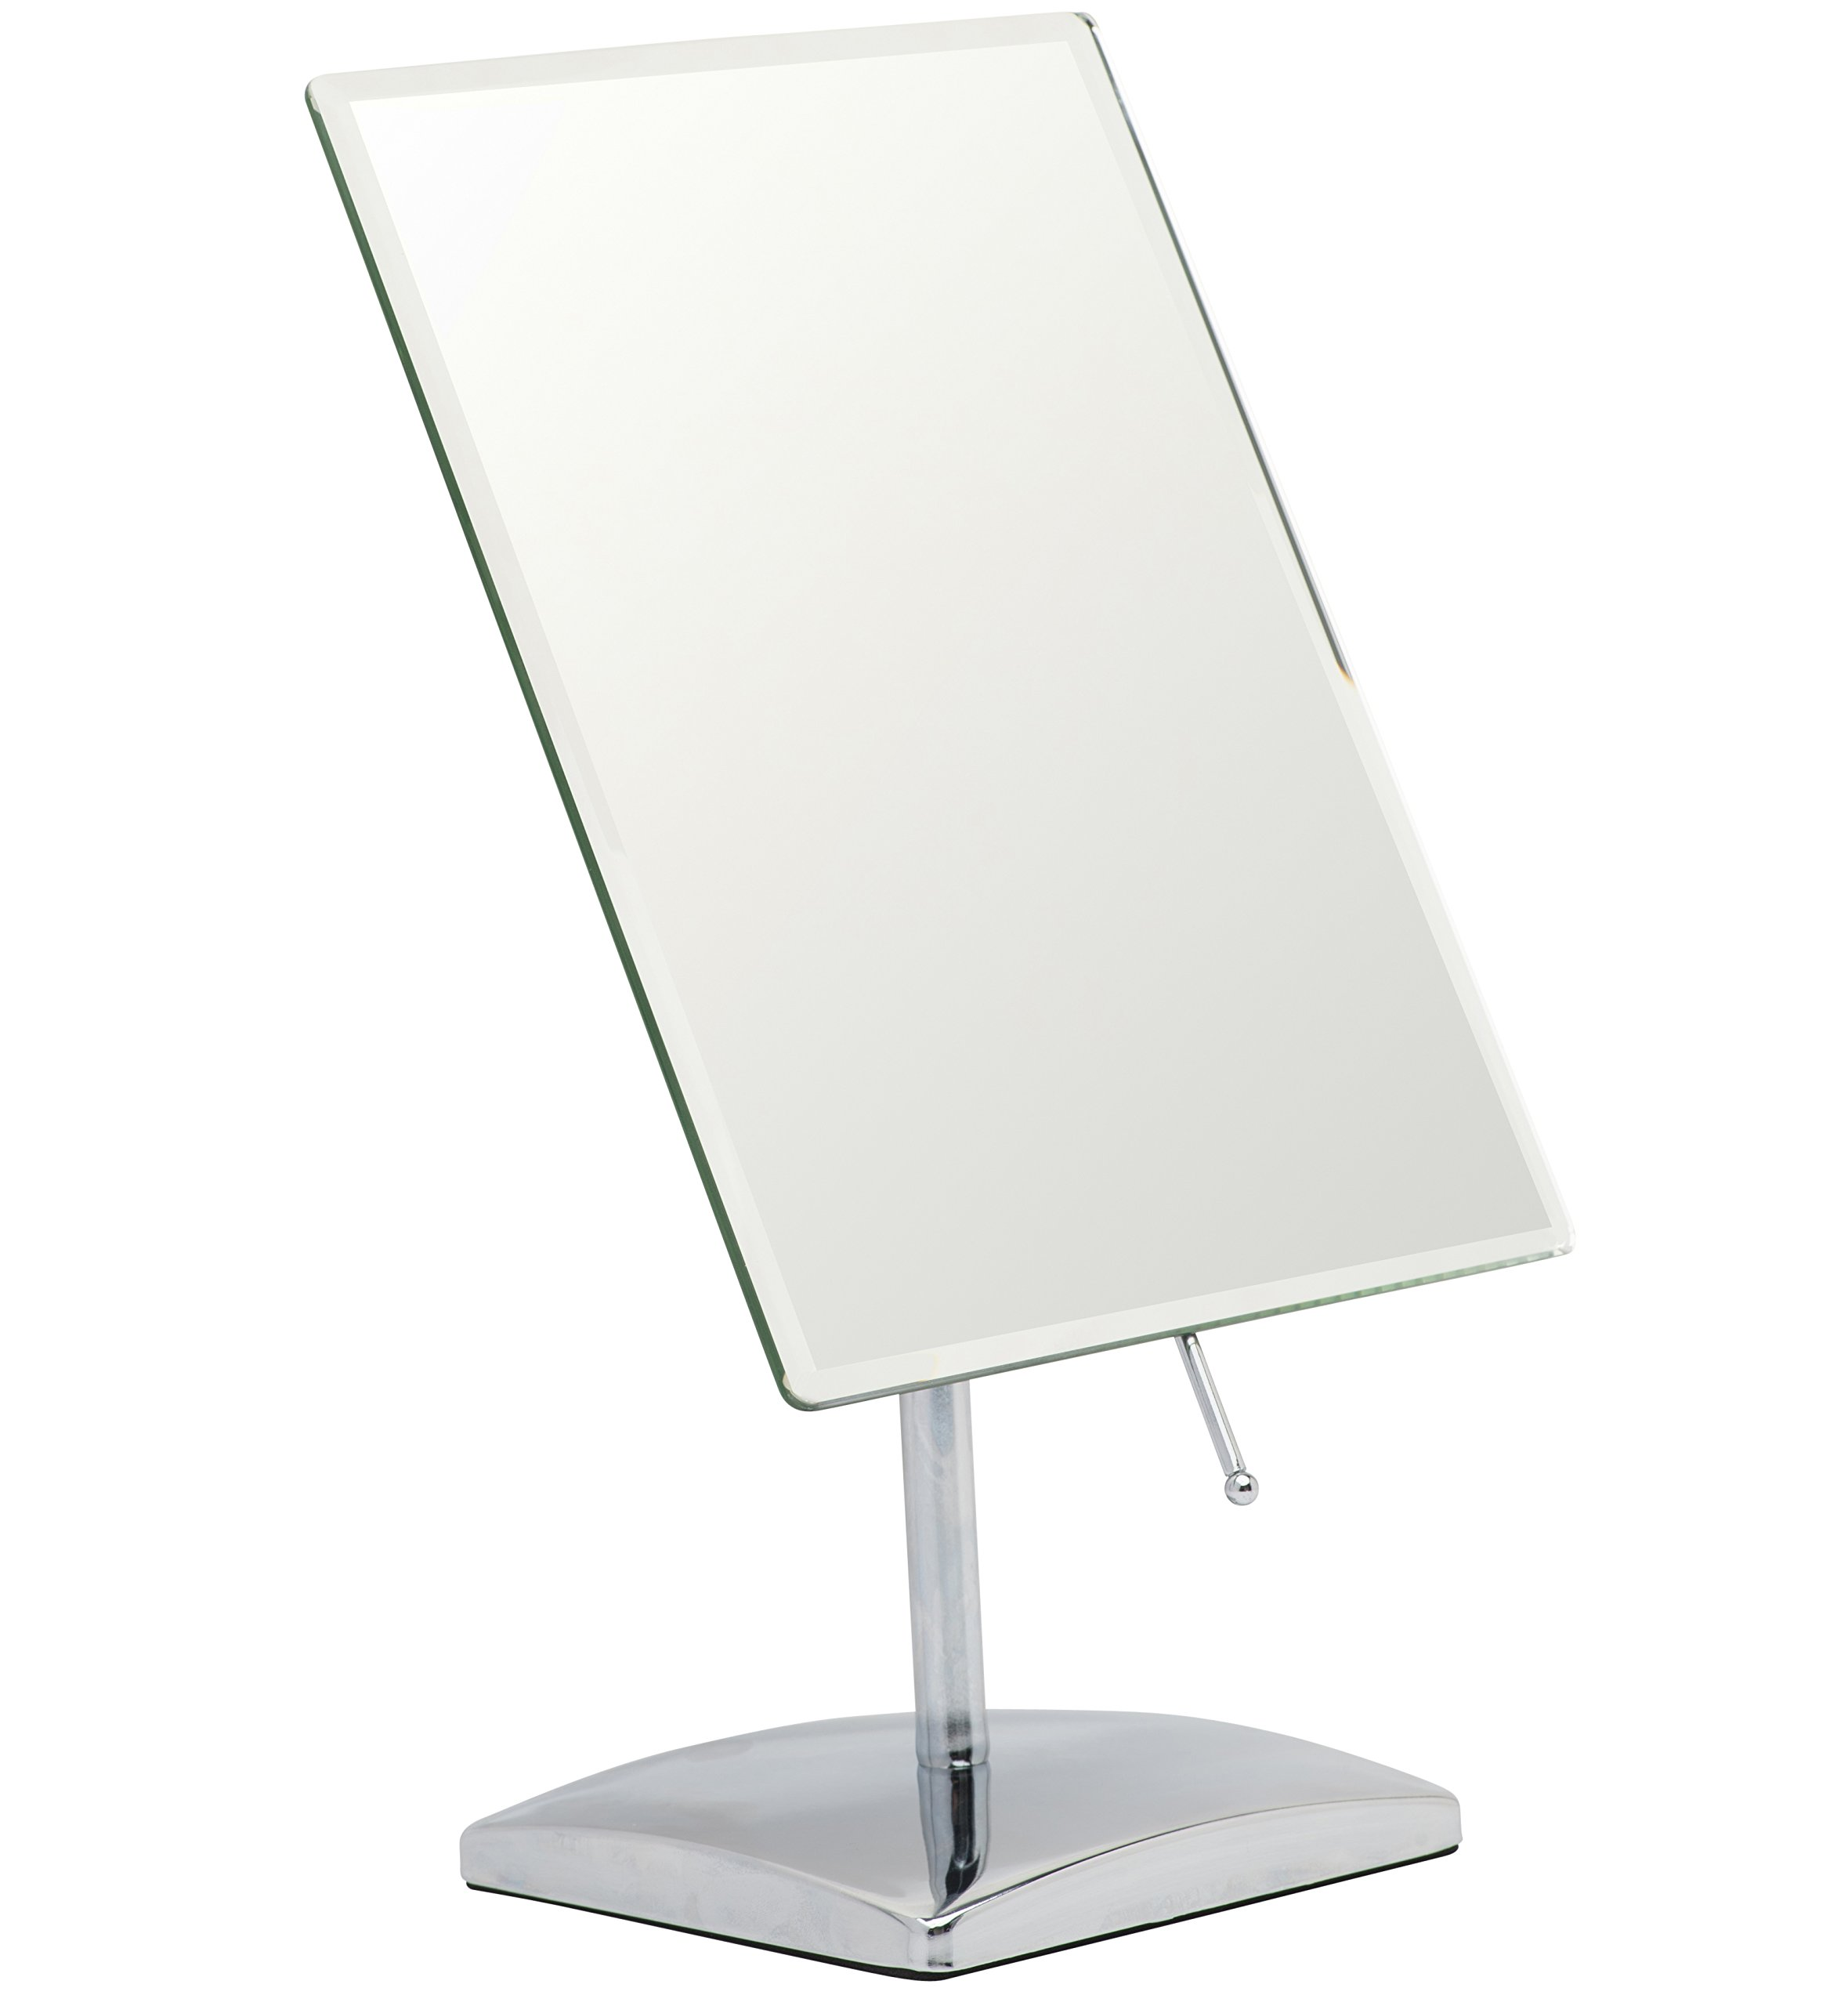 Mirrorvana Non-Magnifying Vanity Makeup Mirror, Perfect Modern & Elegant Frameless Design for Bedroom or Bathroom, Large 9.8'' x 7'' Rectangular Glass Surface